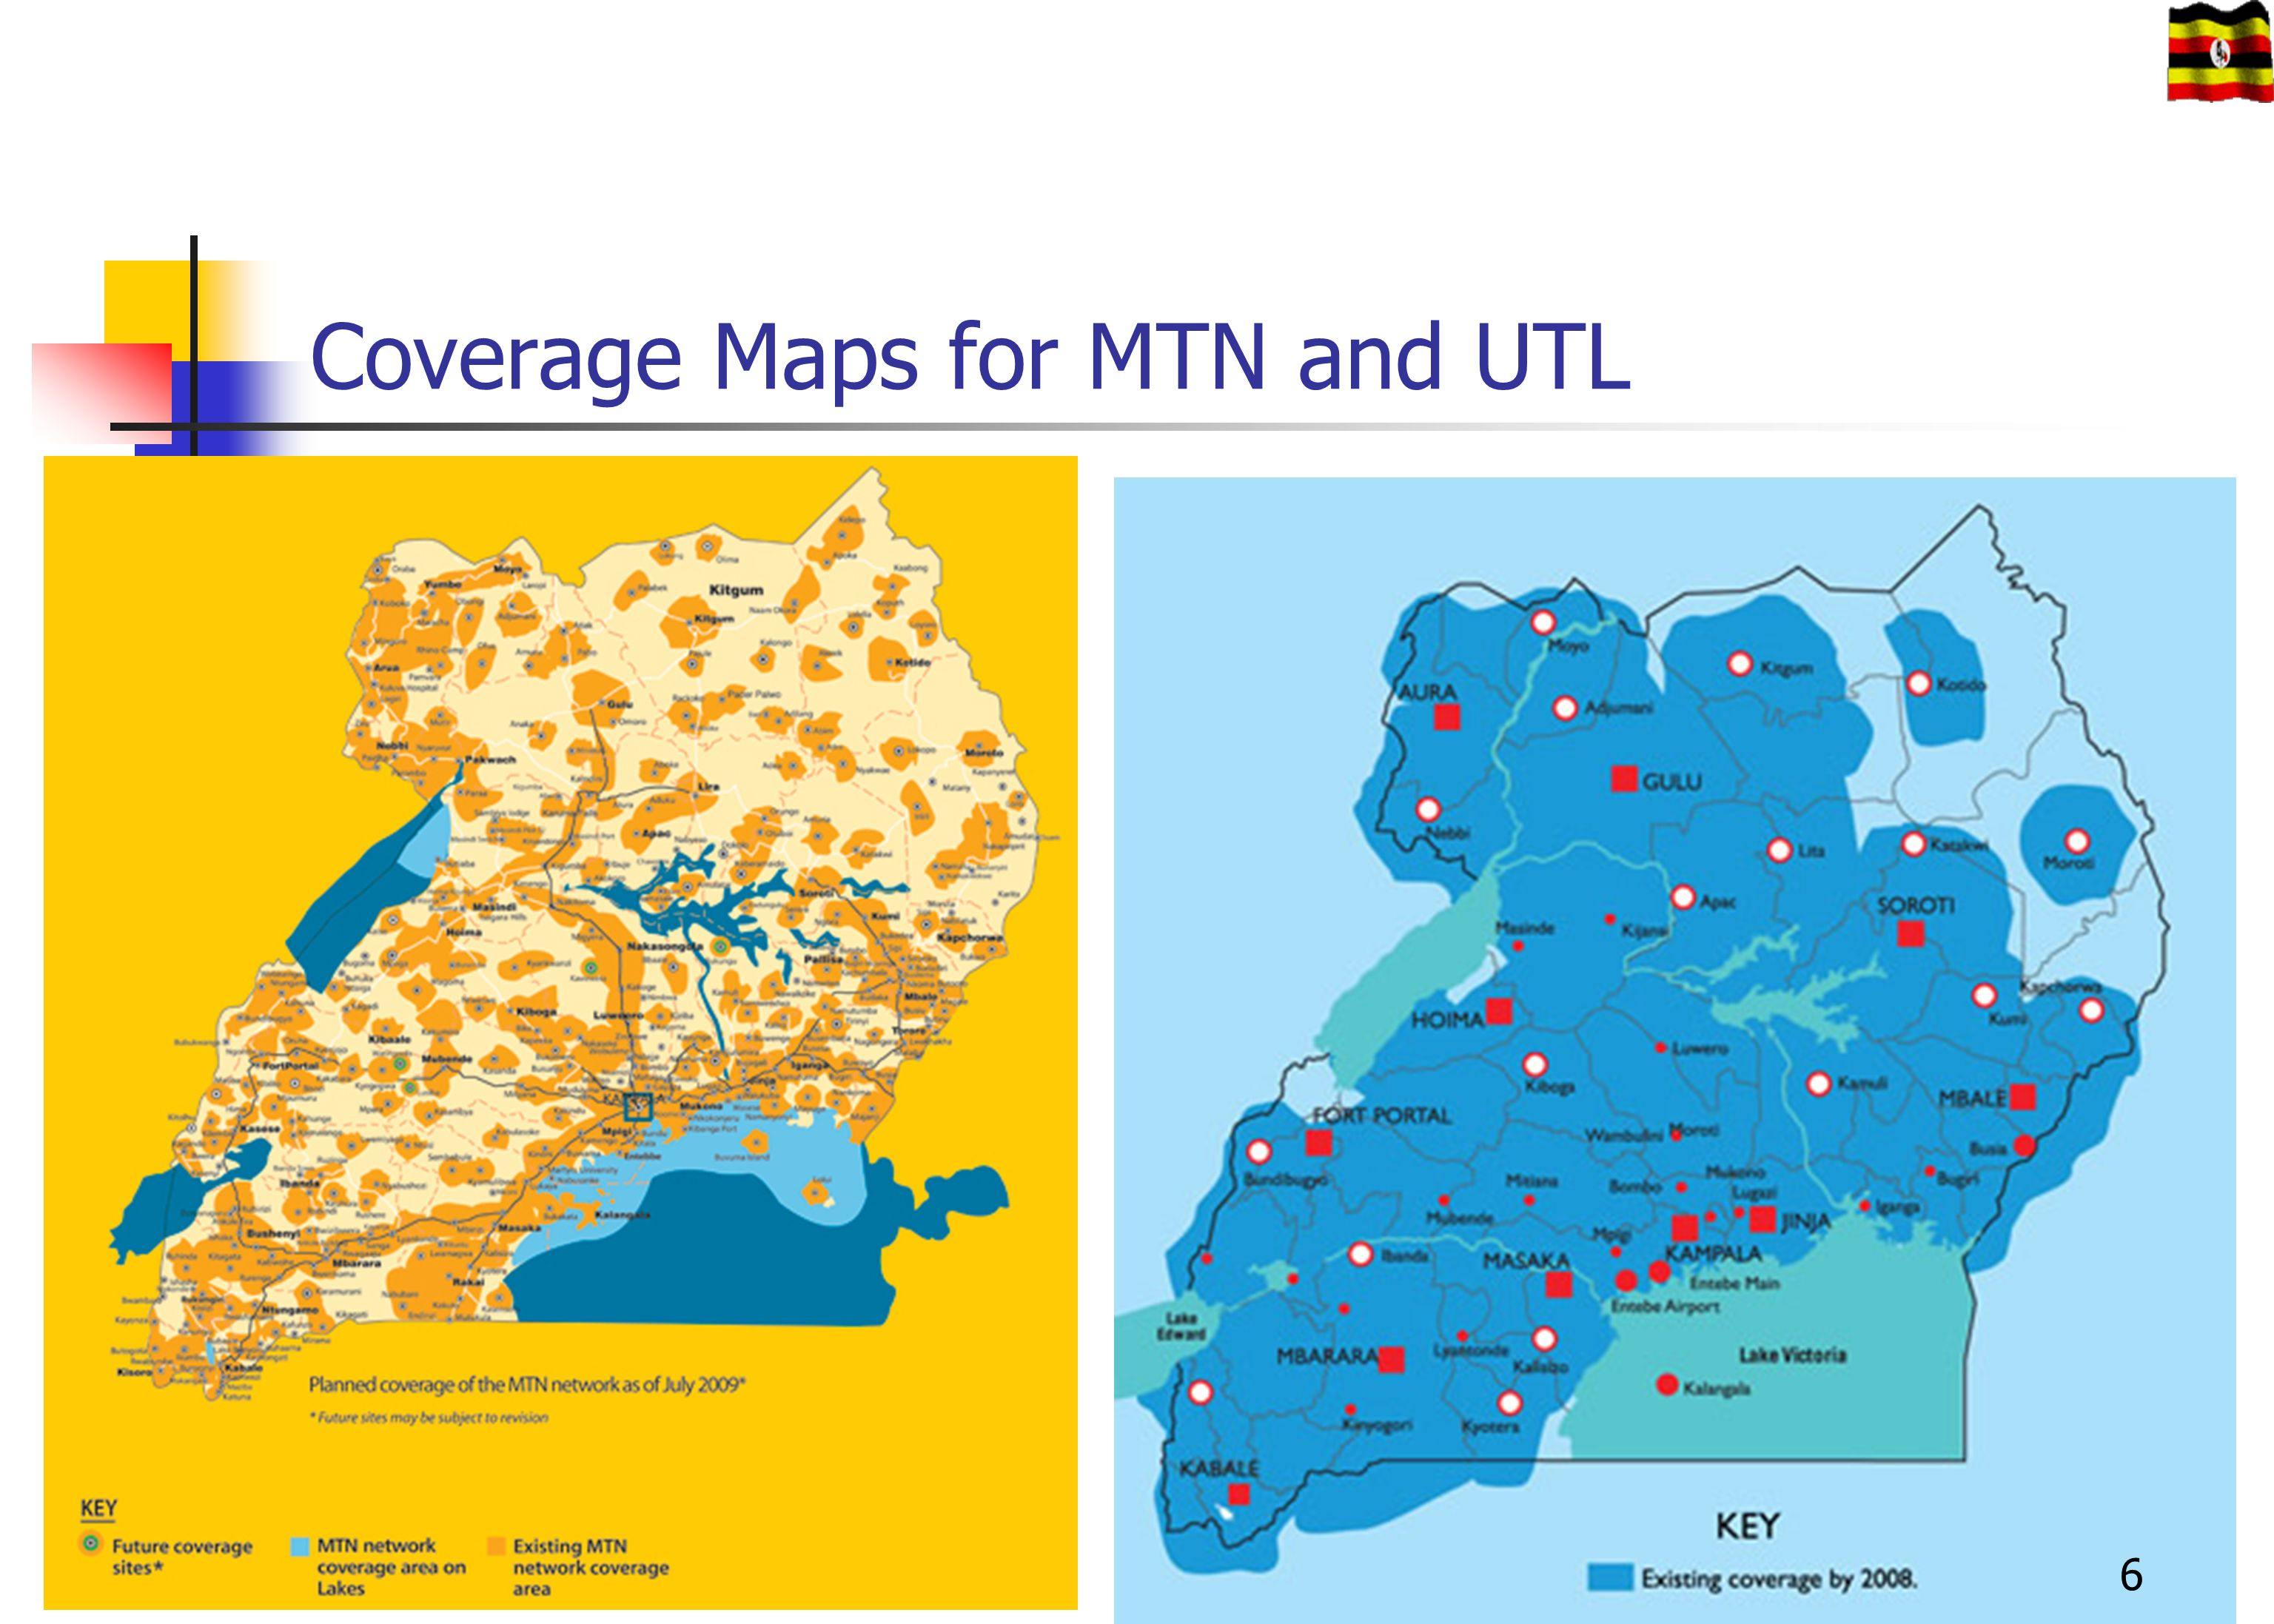 Coverage Maps for MTN and UTL